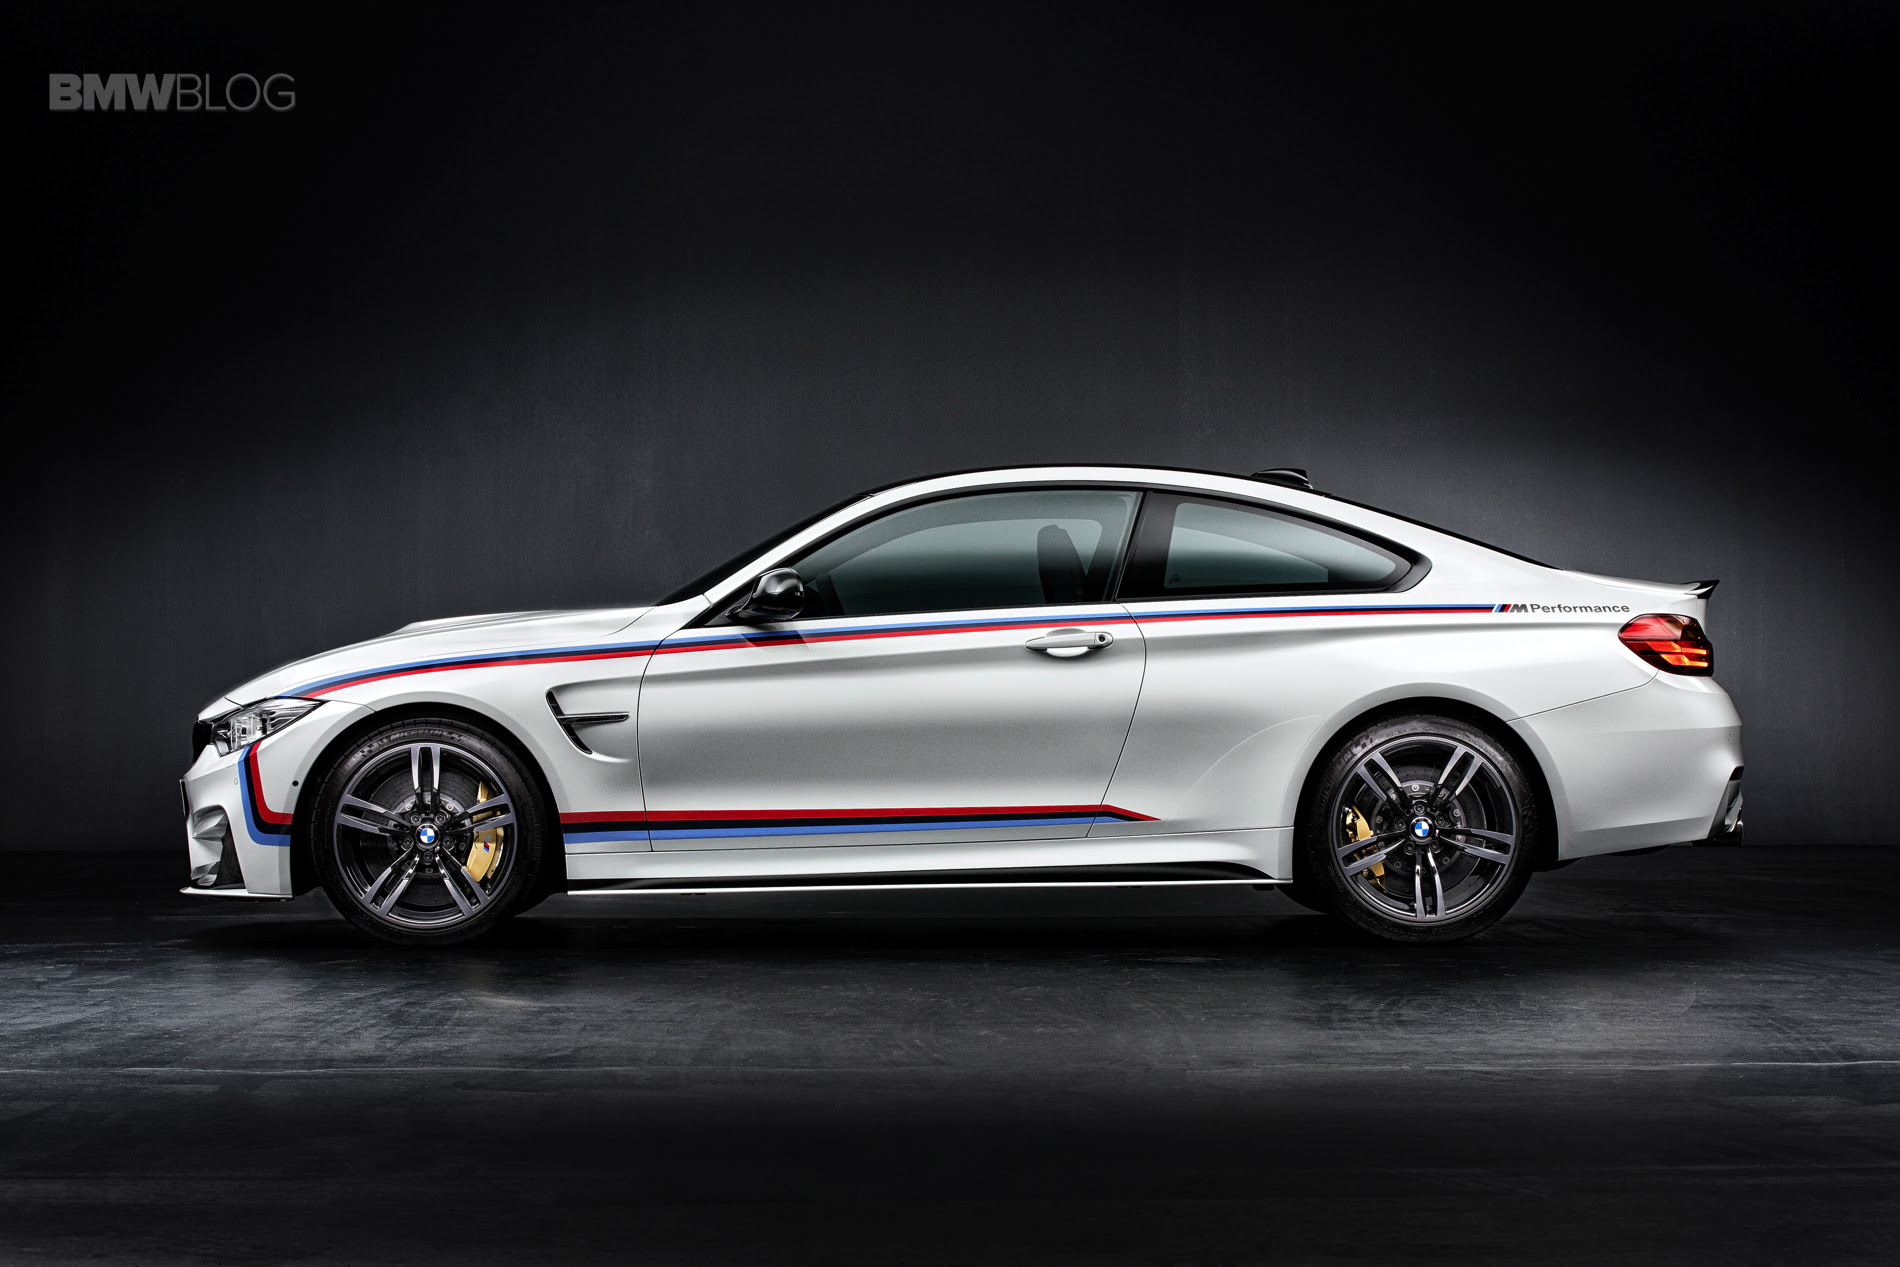 New M Performance parts for BMW M3, BMW M4 Coupe and BMW M4 Convertible